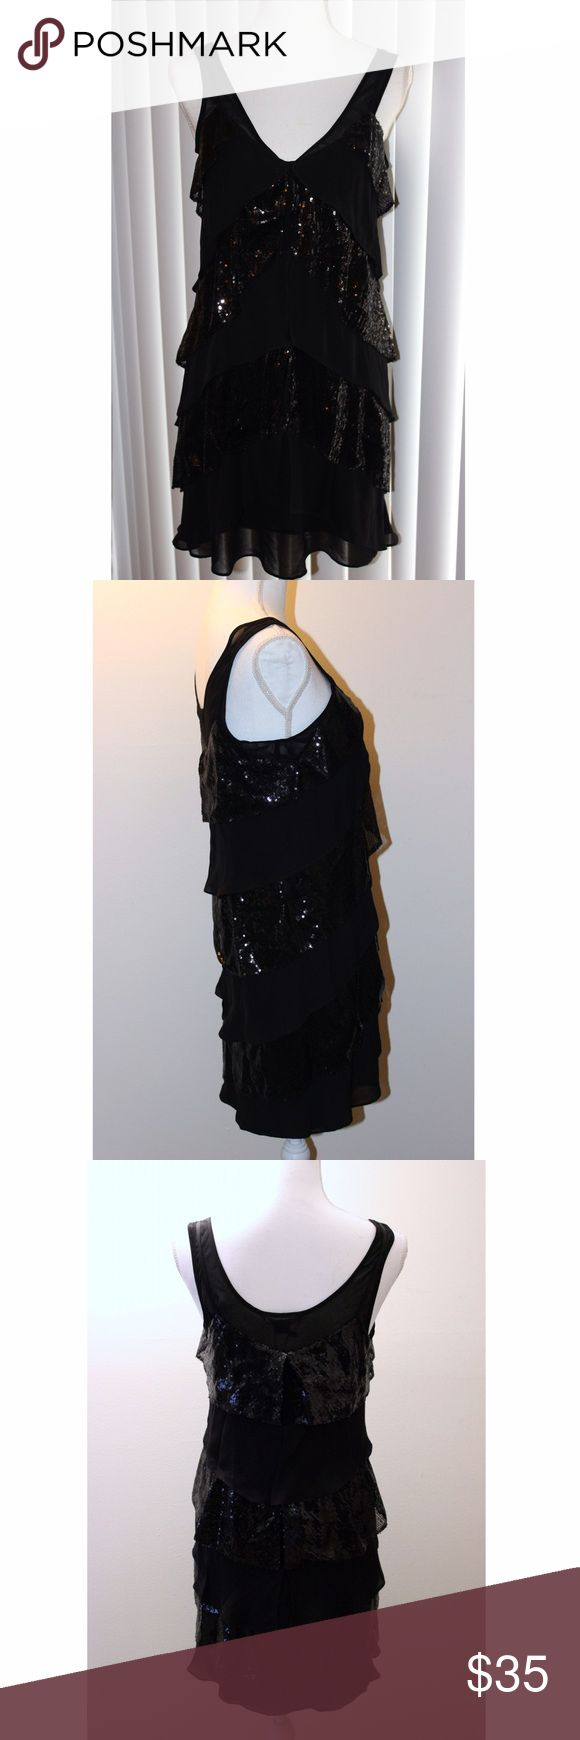 "Armani Exchange Black Sequined Dress Make a statement in this little black sequined dress! It has a sheer lining covered by layers of small sequins and ruffles. The lining is connected to the dress on the shoulders. The lining is stretchy - the rest is not. It is made of polyester and satin. Measurements: Armpit to armpit 15.5""; Waist 36""; Hips 39""; Length 31"". The dress is new with tags by Armani Exchange and is a size 6. Armani Exchange Dresses Mini"